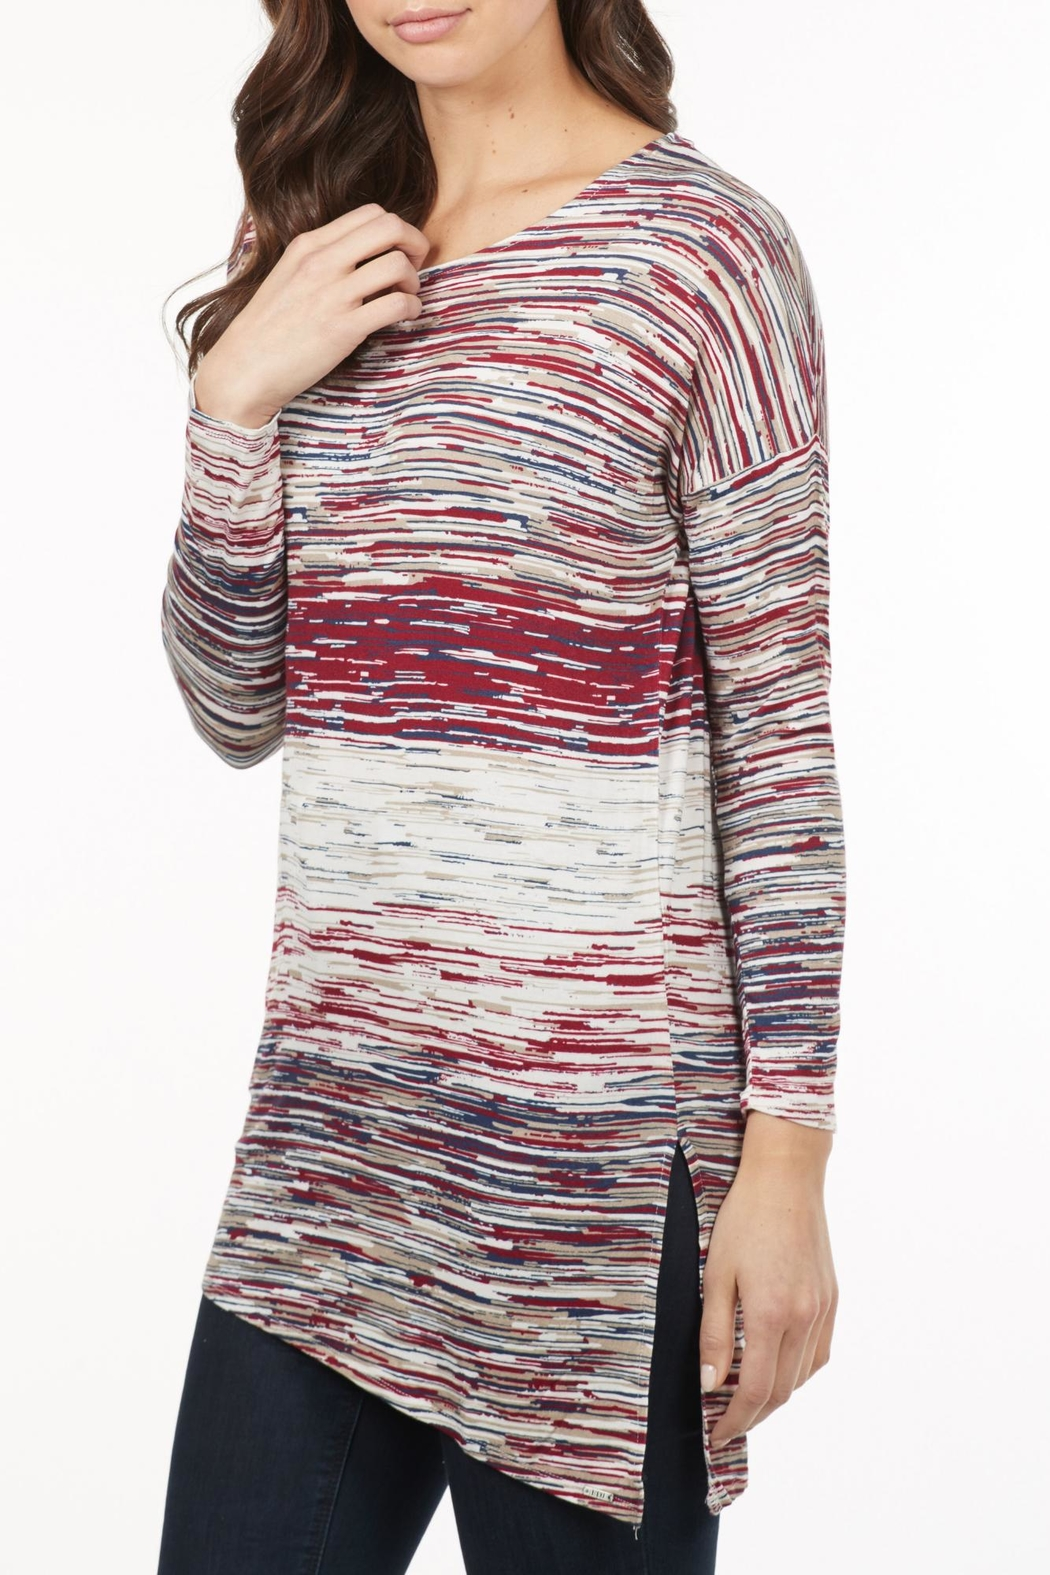 French Dressing Jeans Asymmetrical Stripe Top - Front Full Image